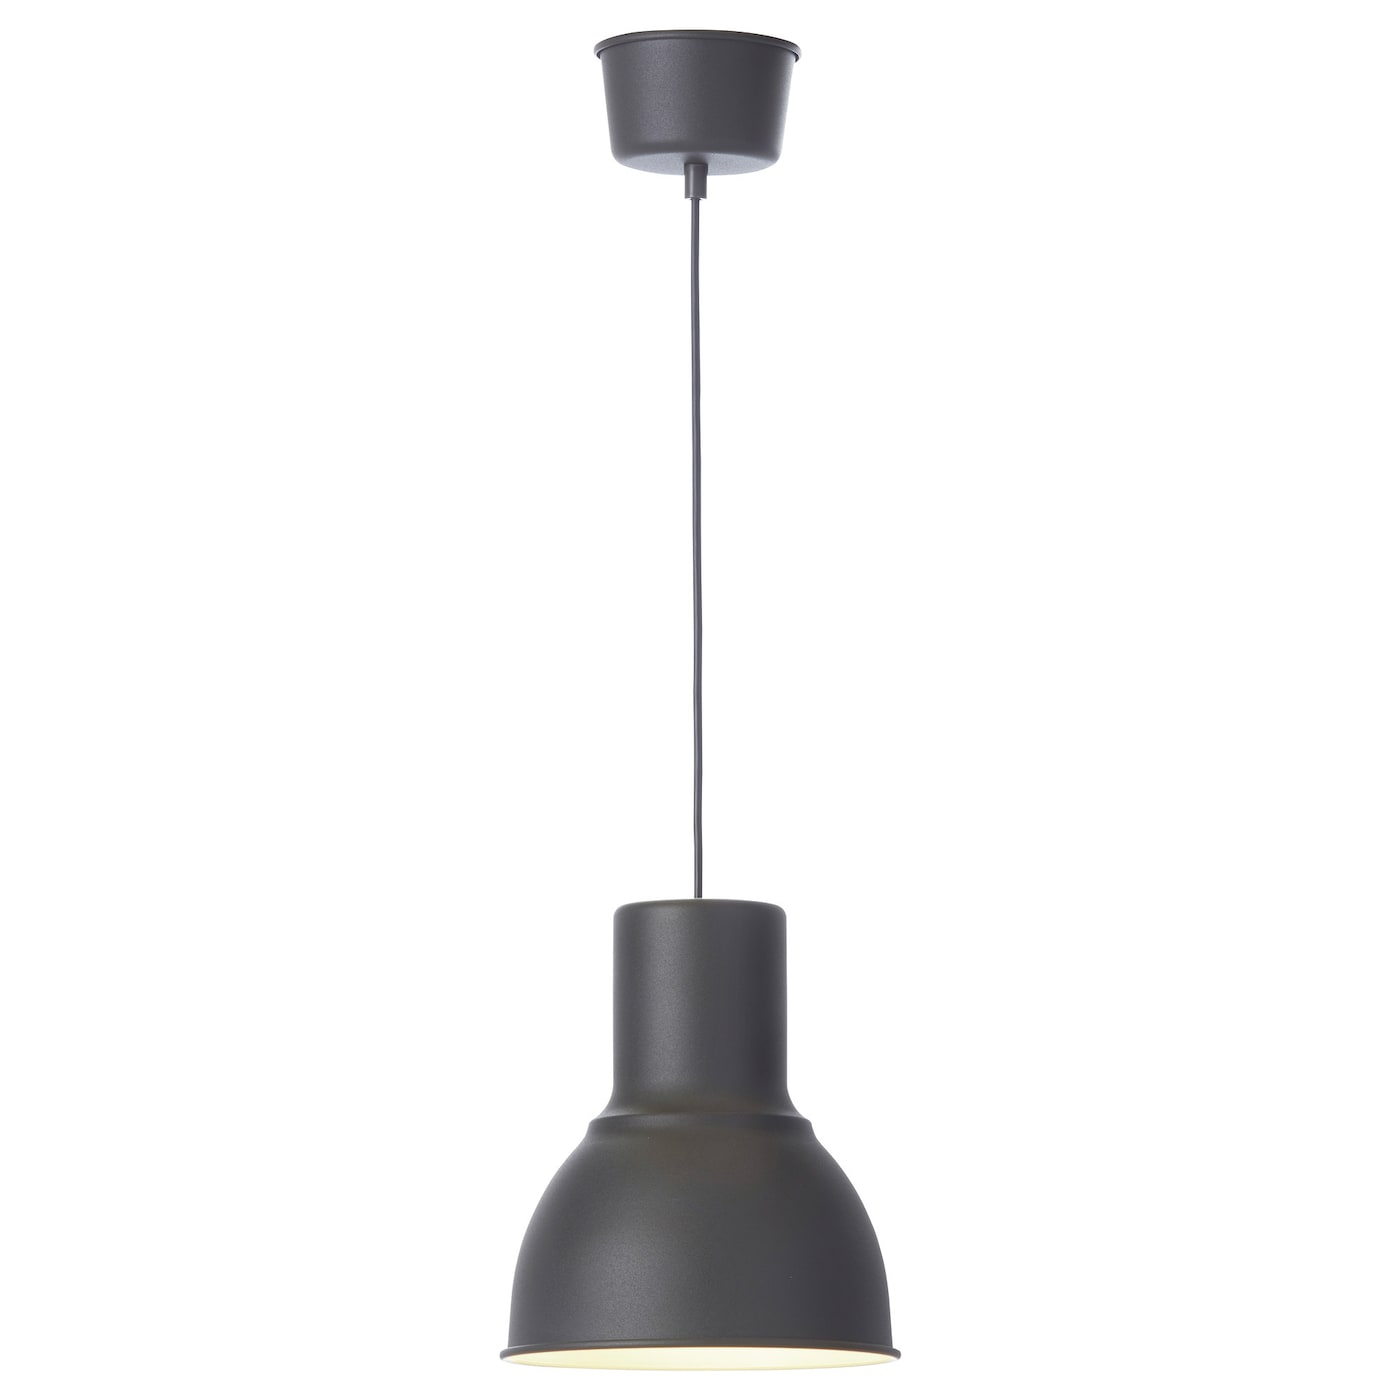 hektar pendant lamp dark grey 22 cm ikea. Black Bedroom Furniture Sets. Home Design Ideas